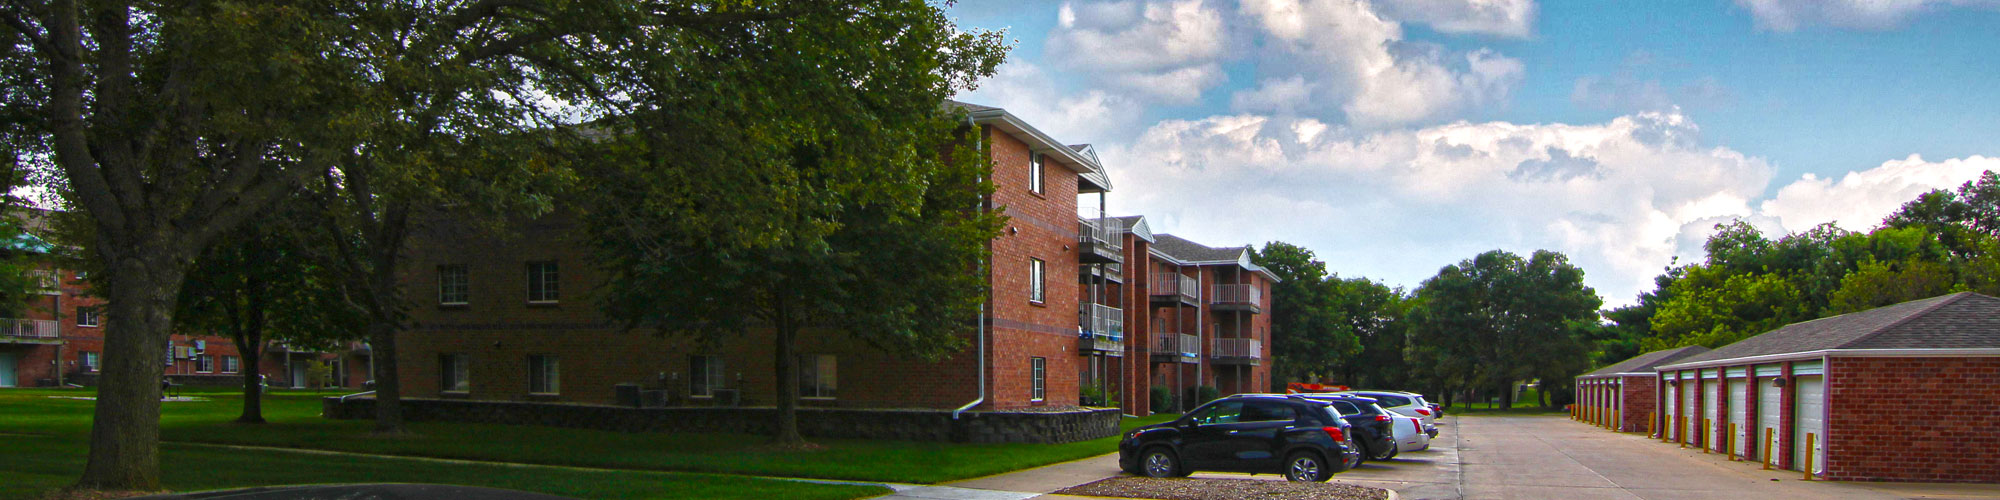 South Lincoln Apartments